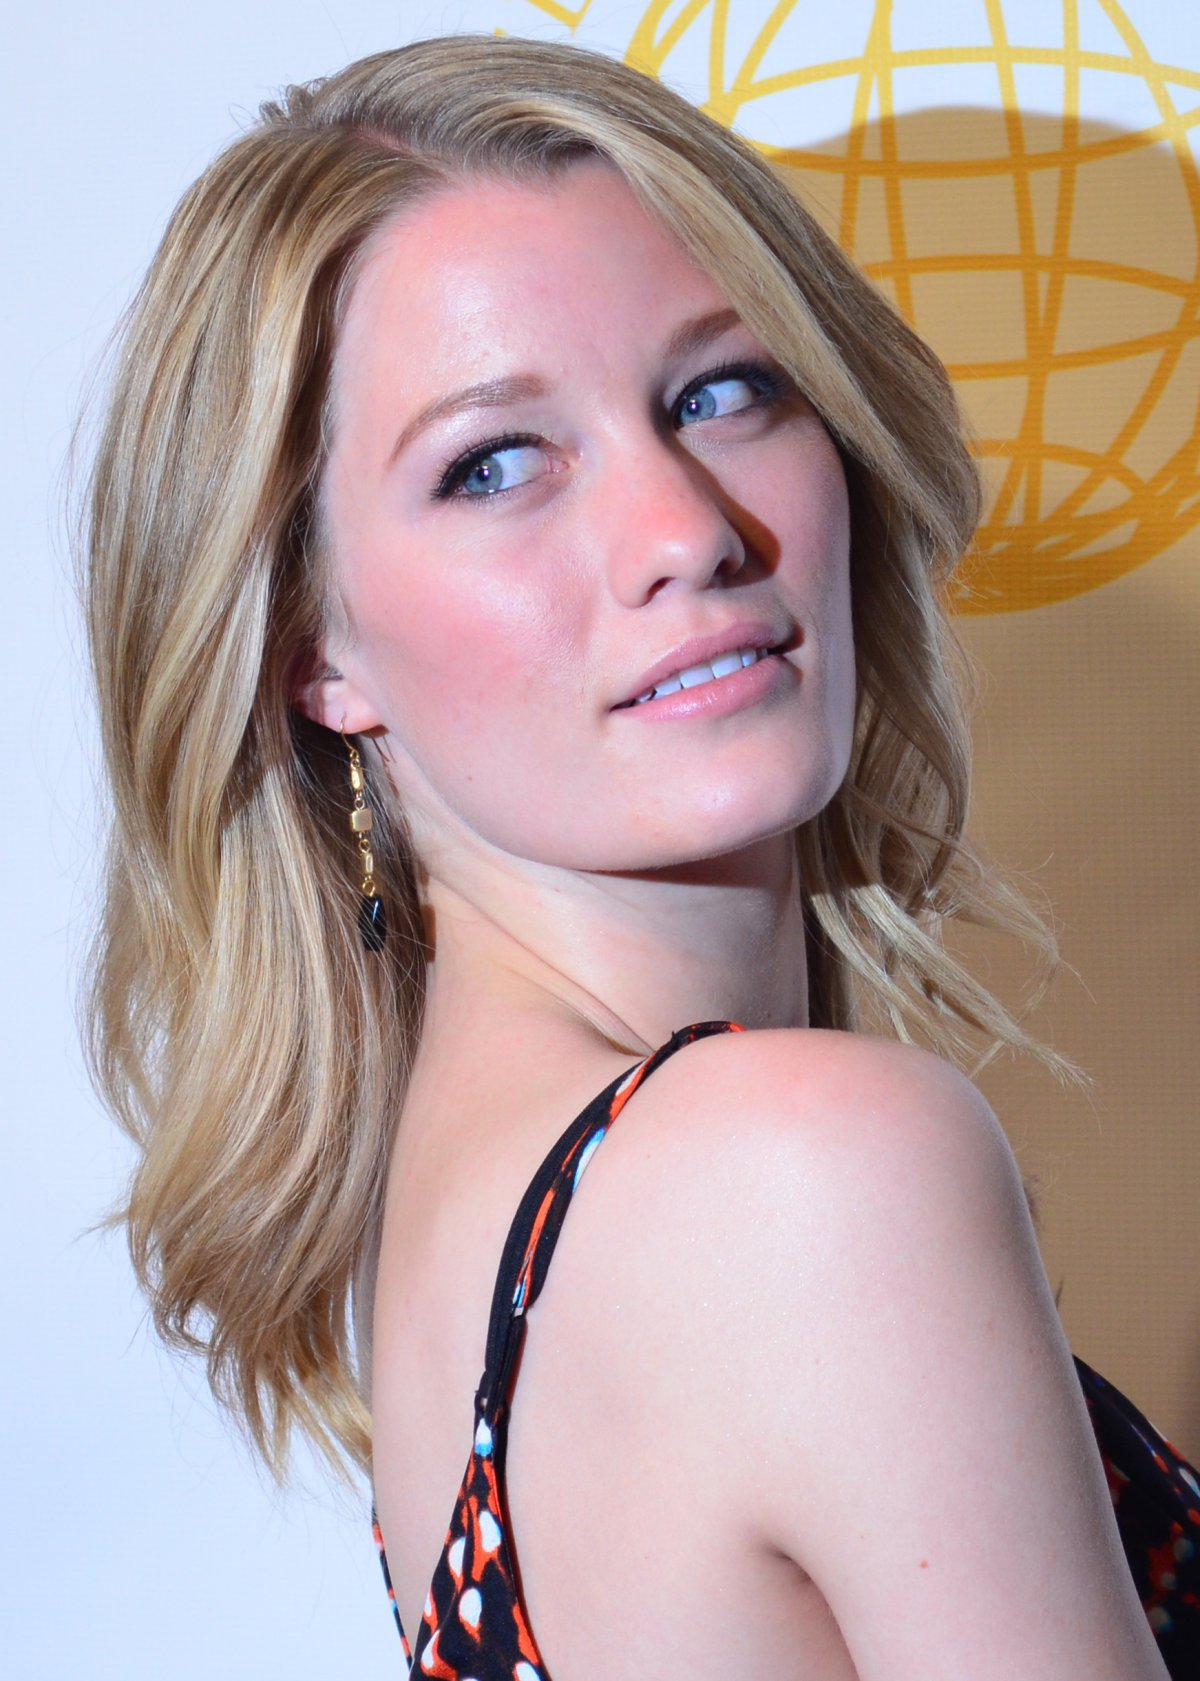 Topher Grace engaged to Ashley Hinshaw - Reality TV World